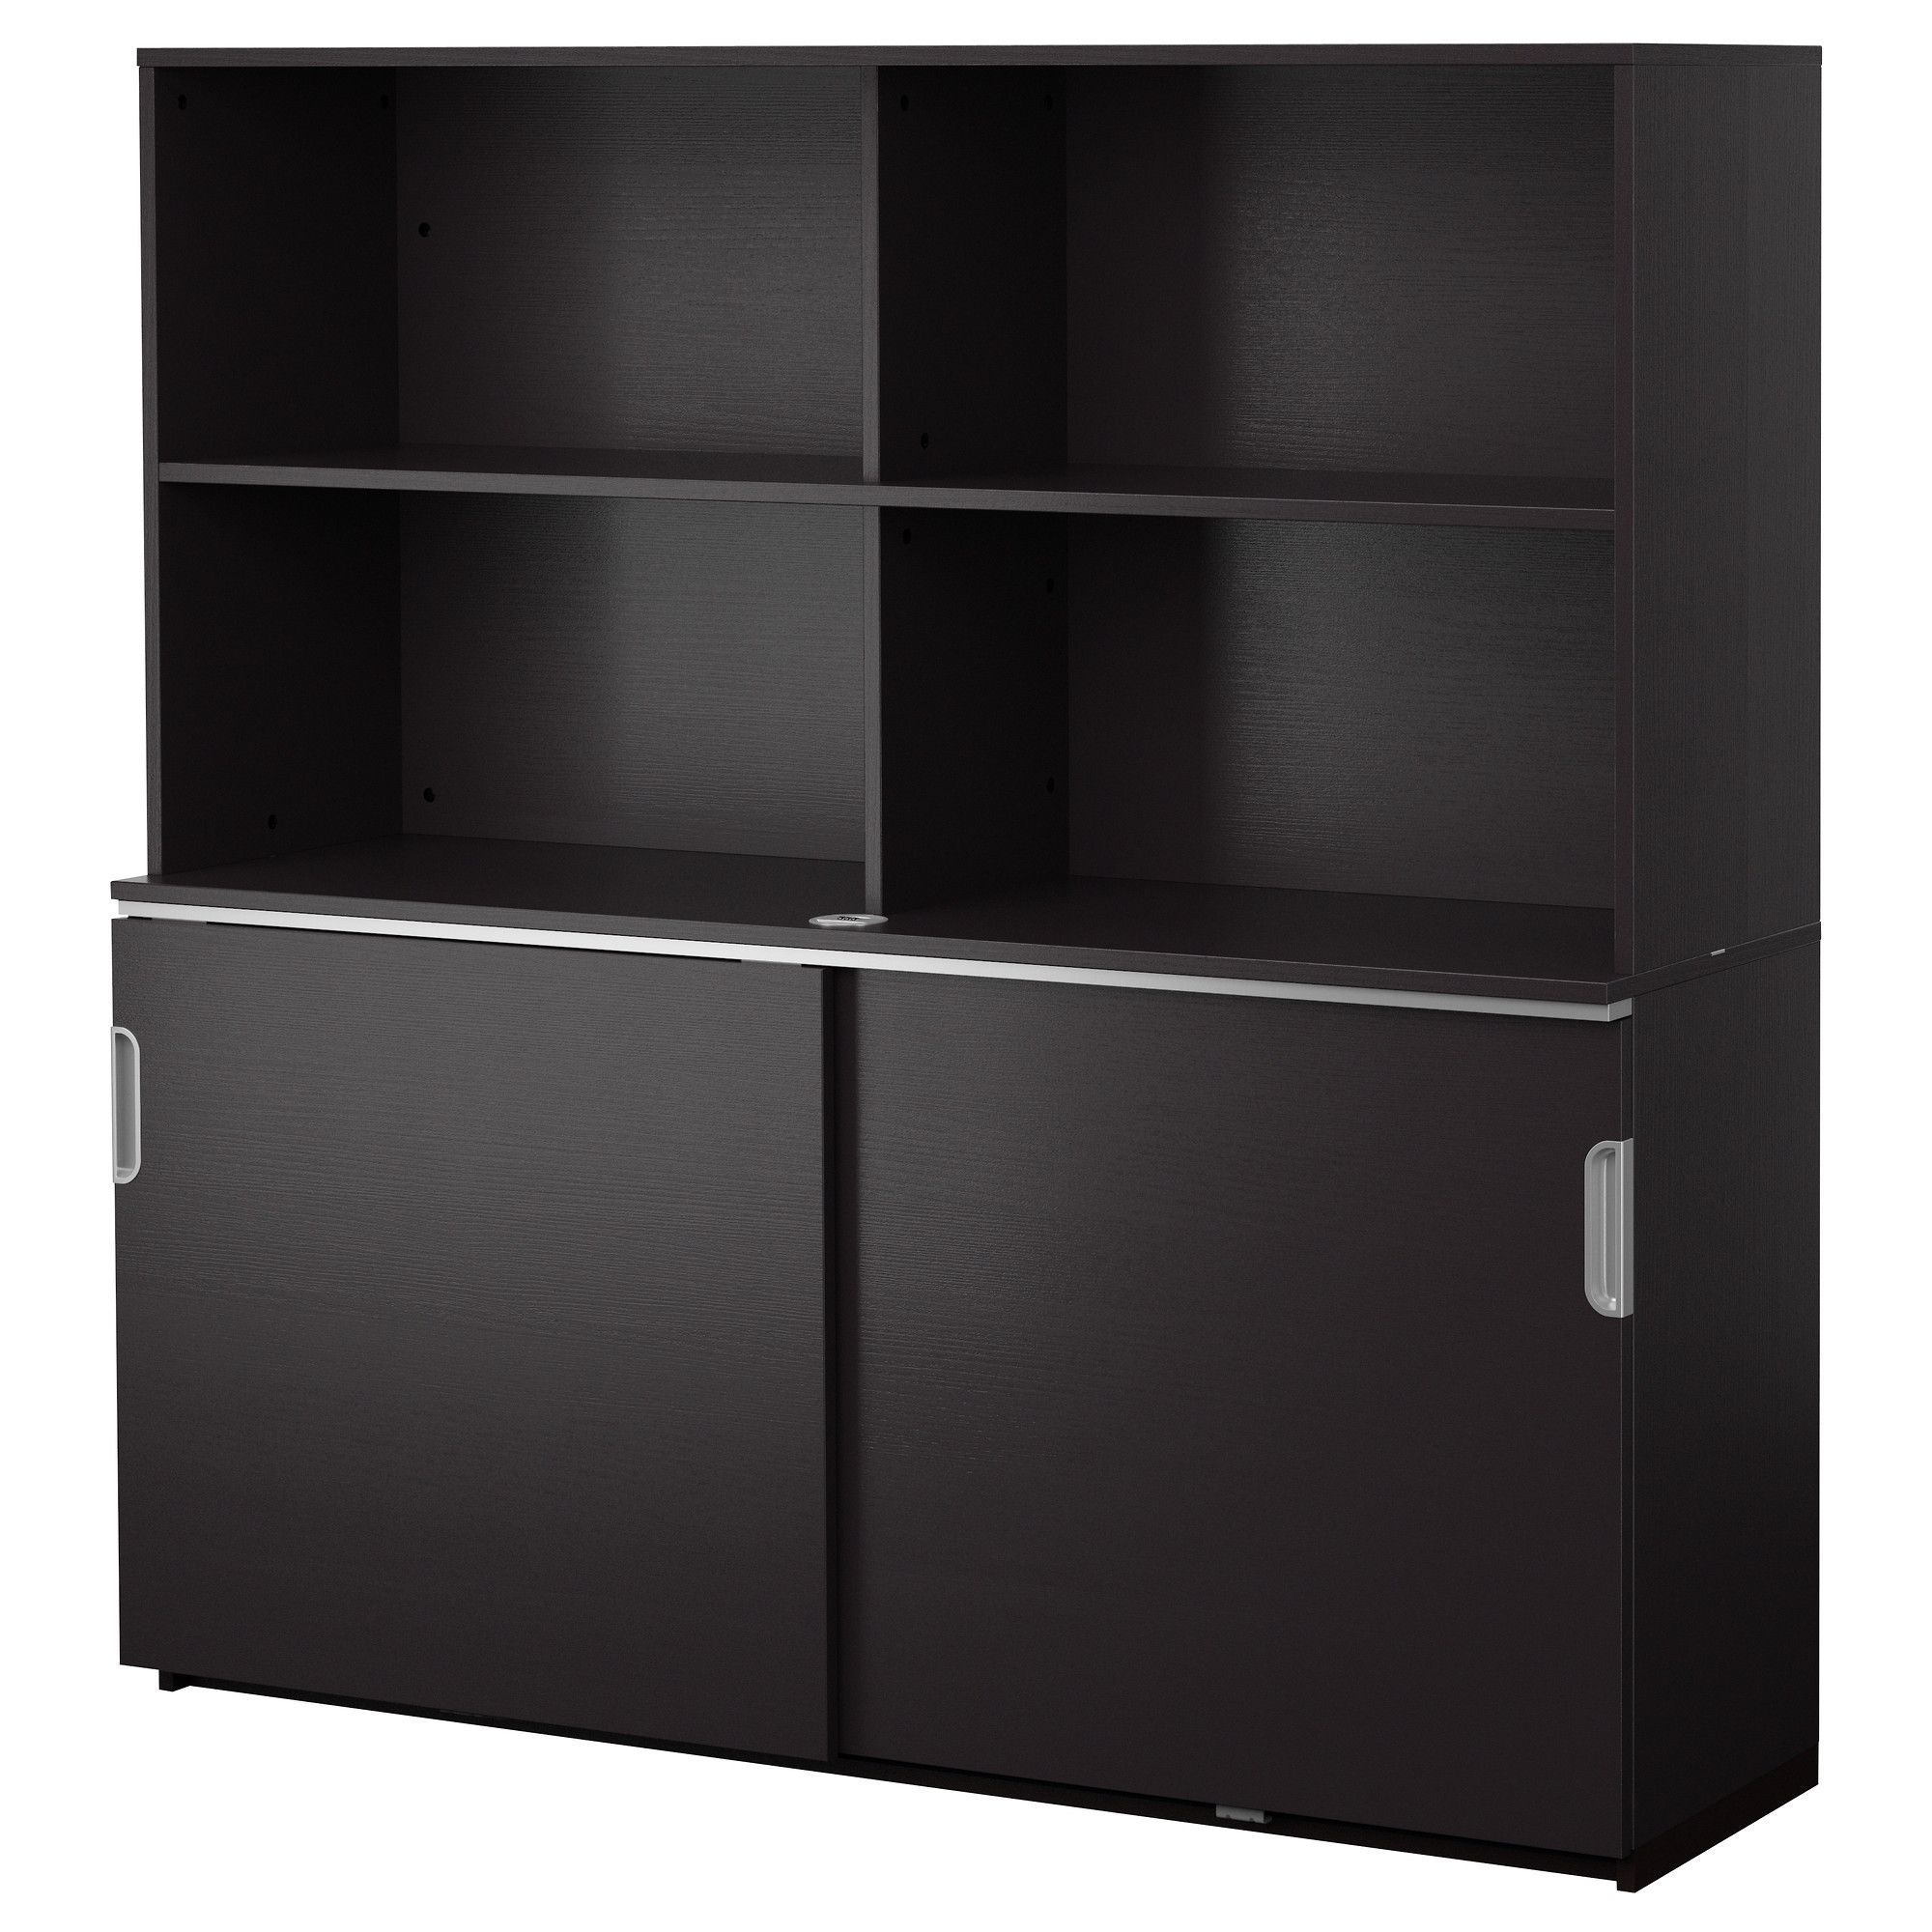 Galant Storage Combination W Sliding Doors Black Brown Ikea